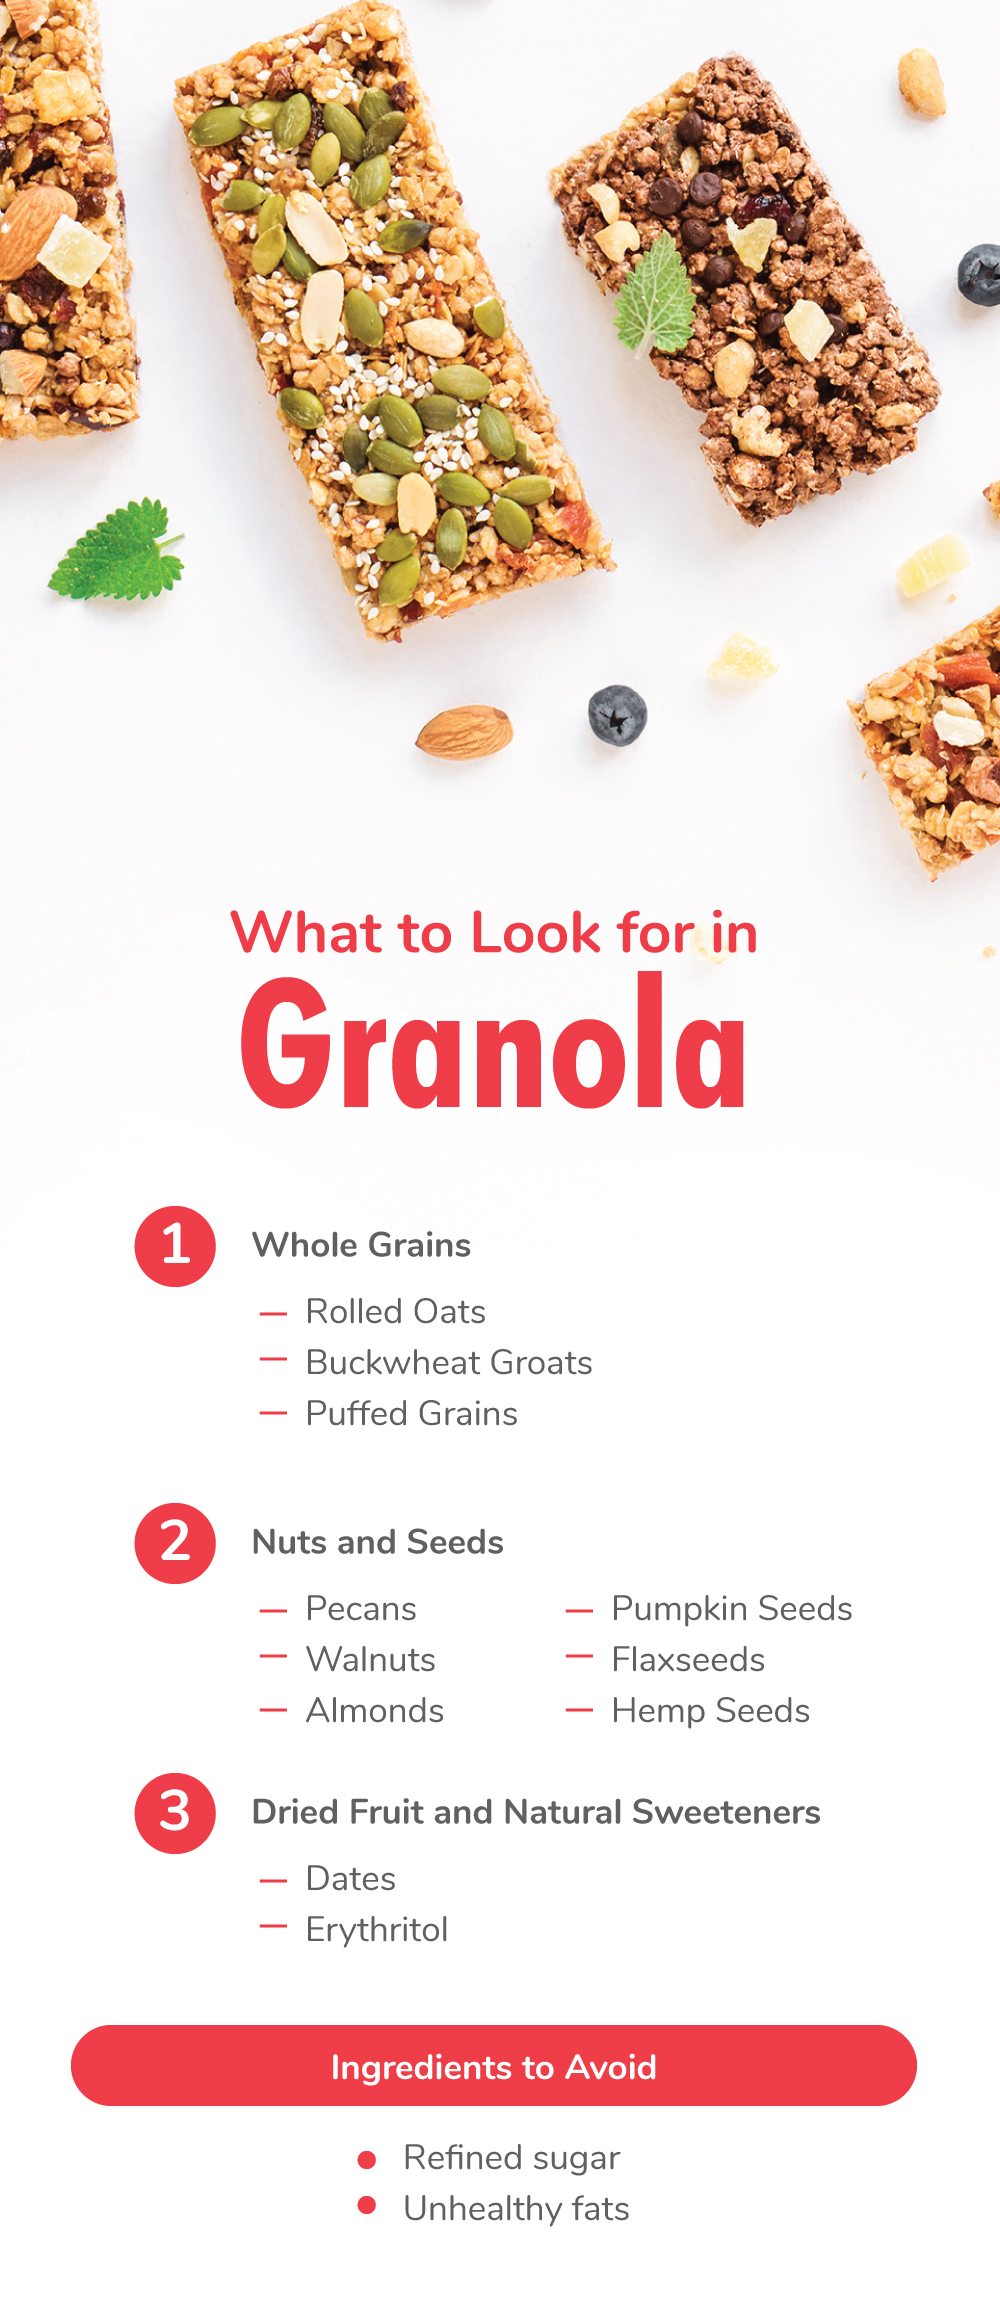 What to Look for in Granola